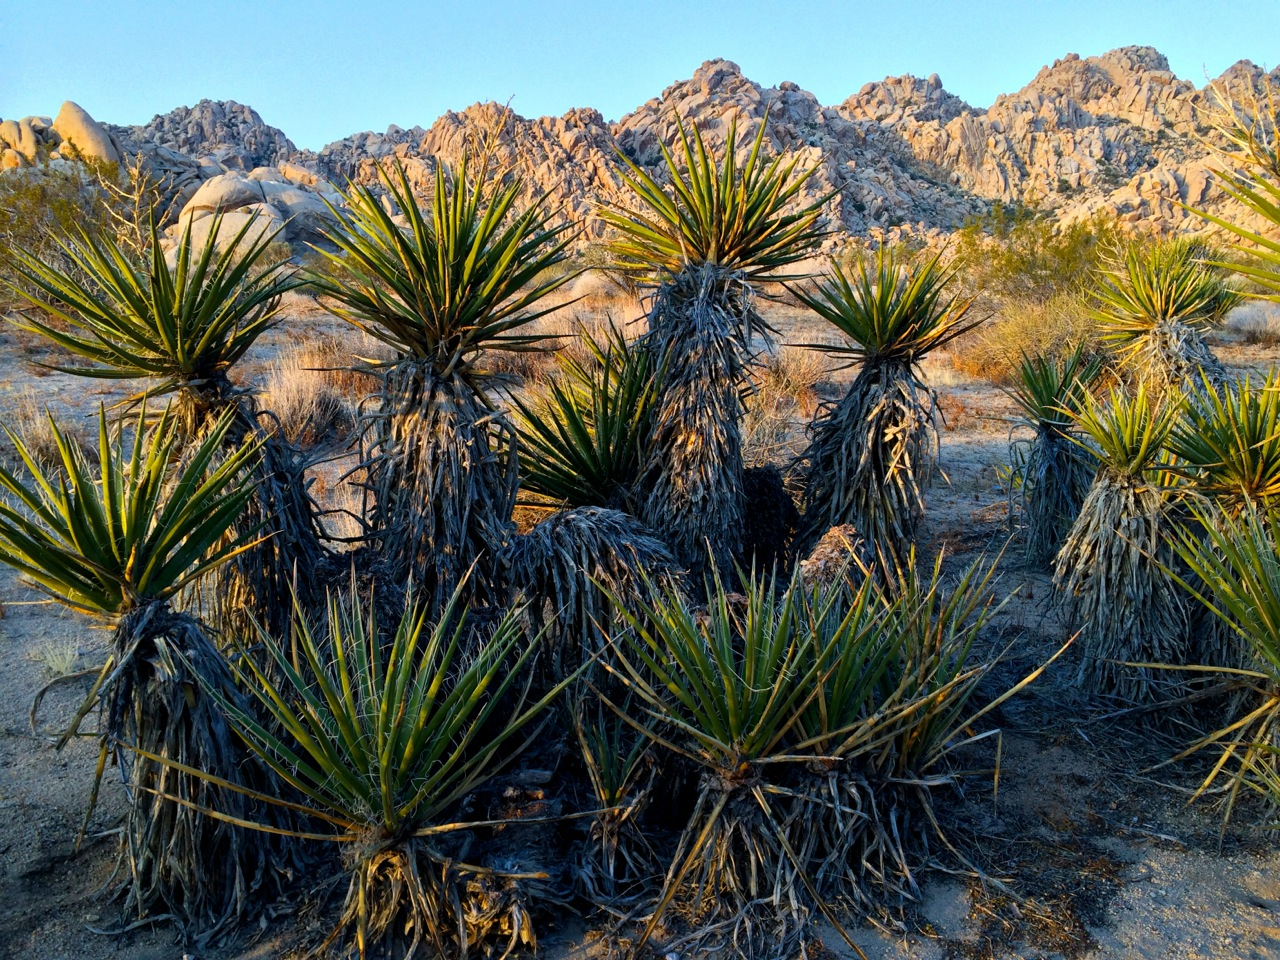 Plants-joshua-tree-Flowering-Mohave-Yucca-Photo-by-Yvonne-Condes